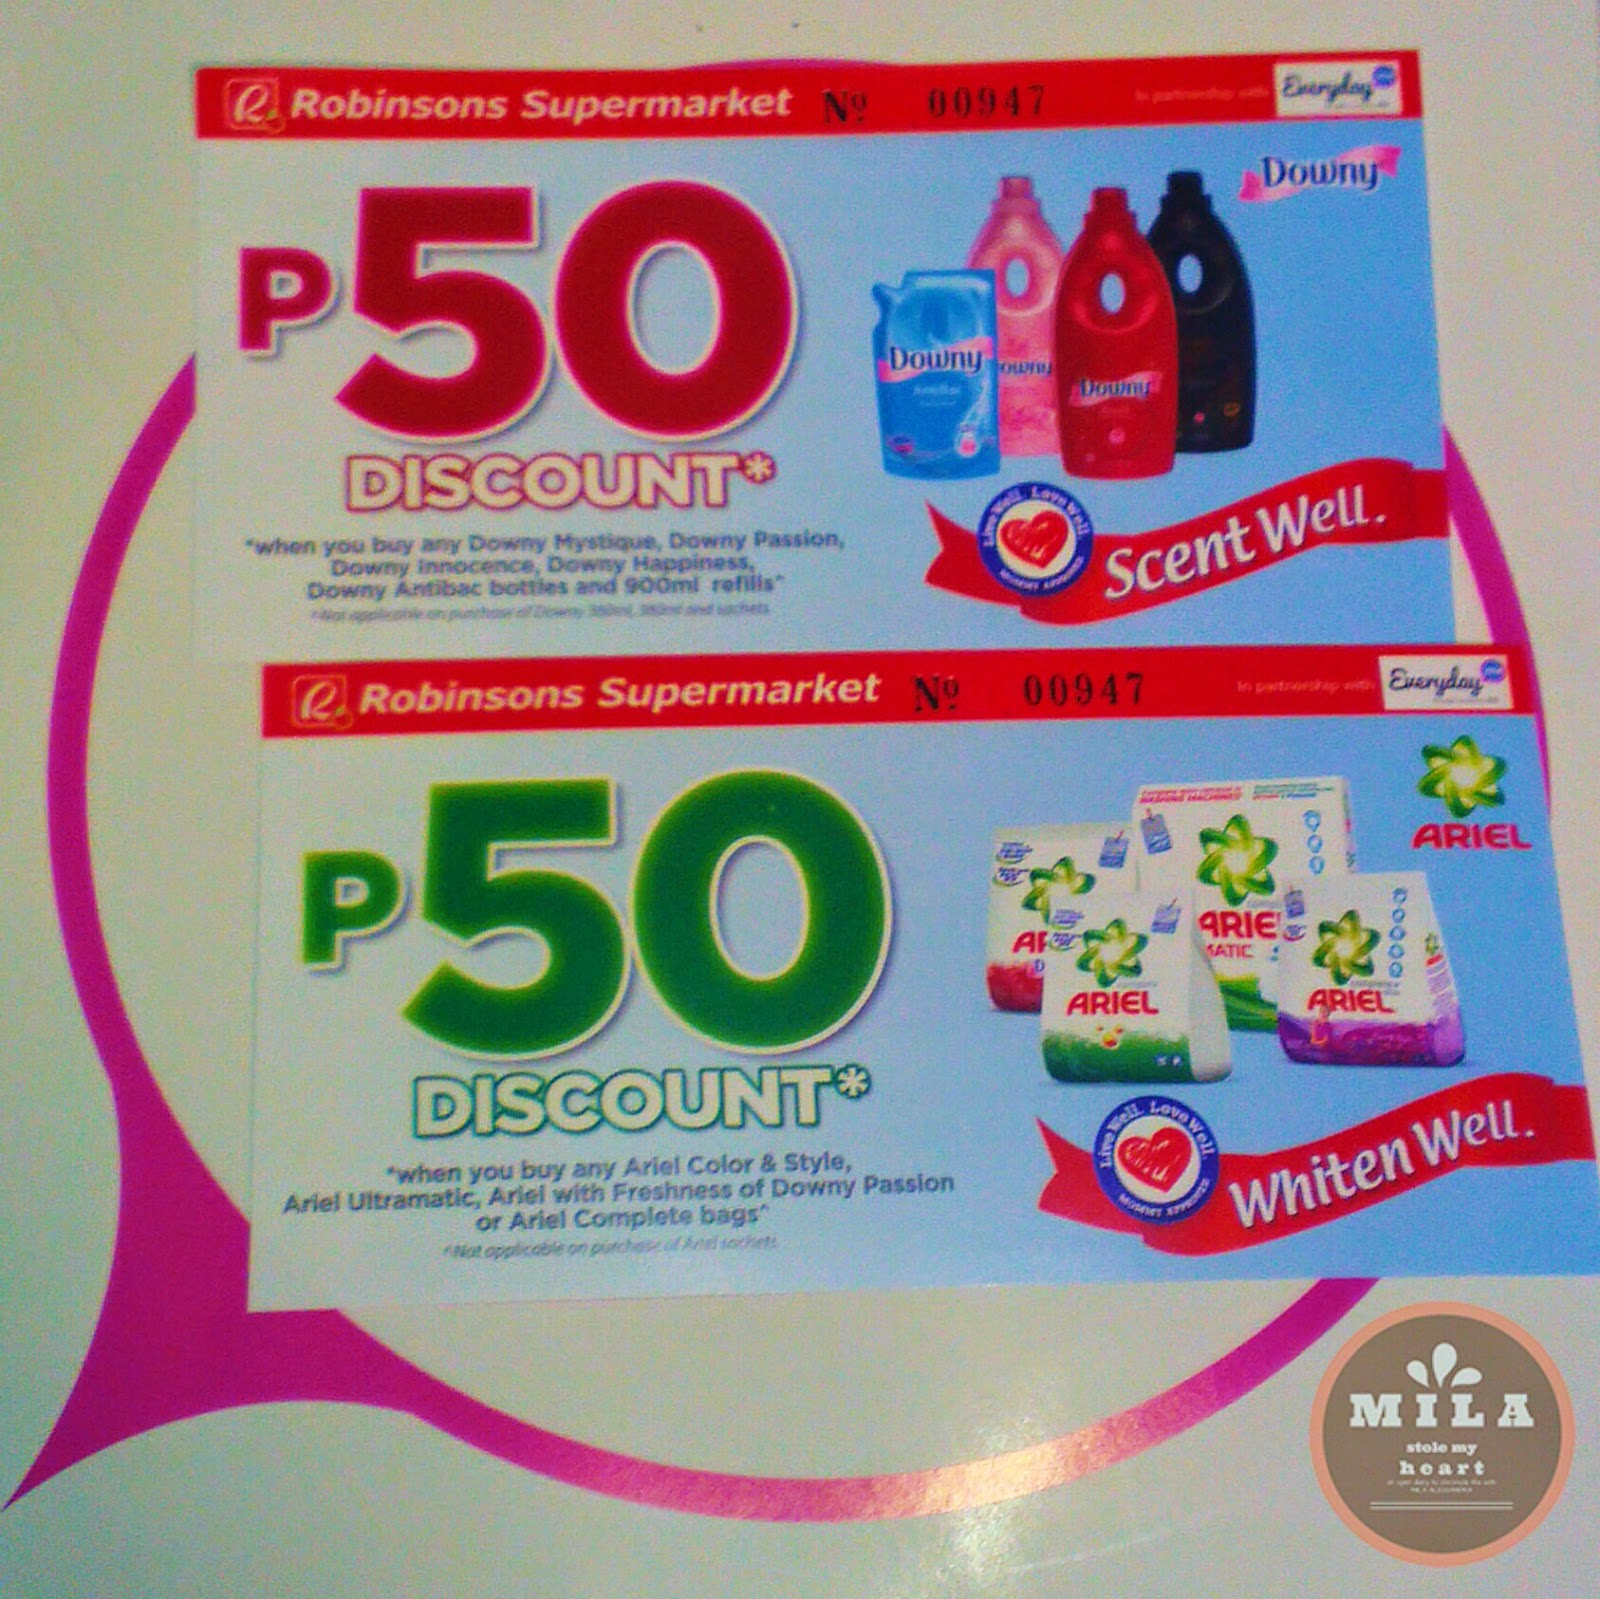 Downy and Ariel Discount Vouchers